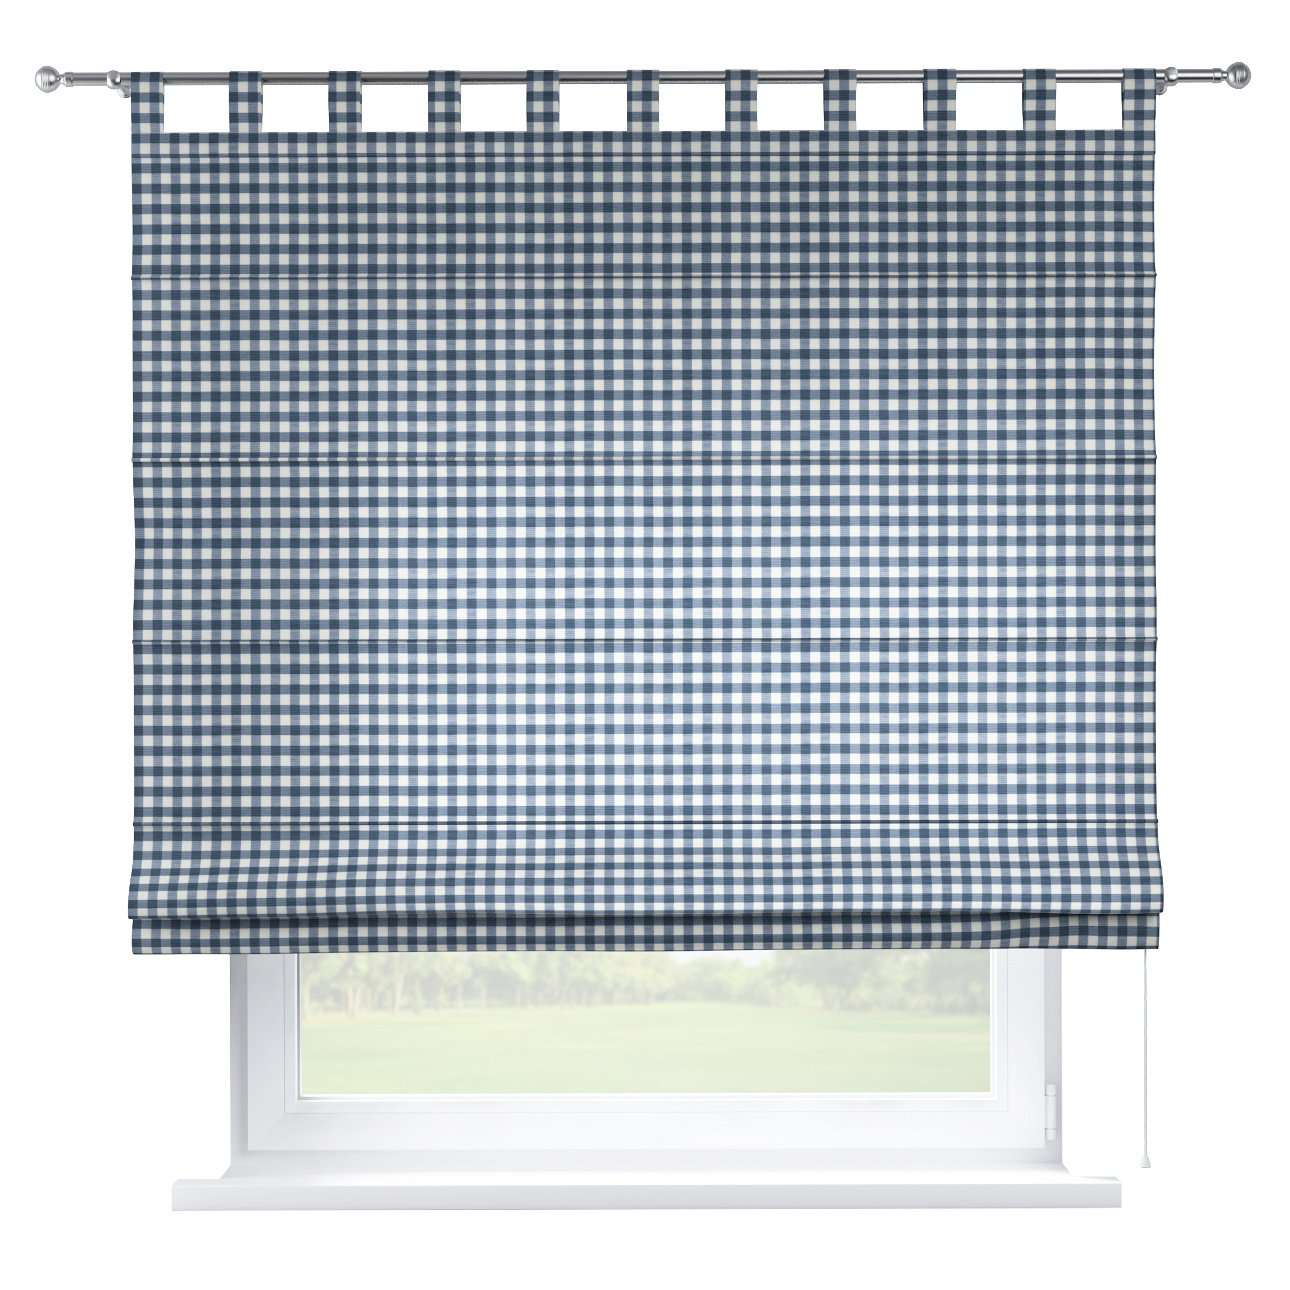 Verona tab top roman blind 80 x 170 cm (31.5 x 67 inch) in collection Quadro, fabric: 136-01